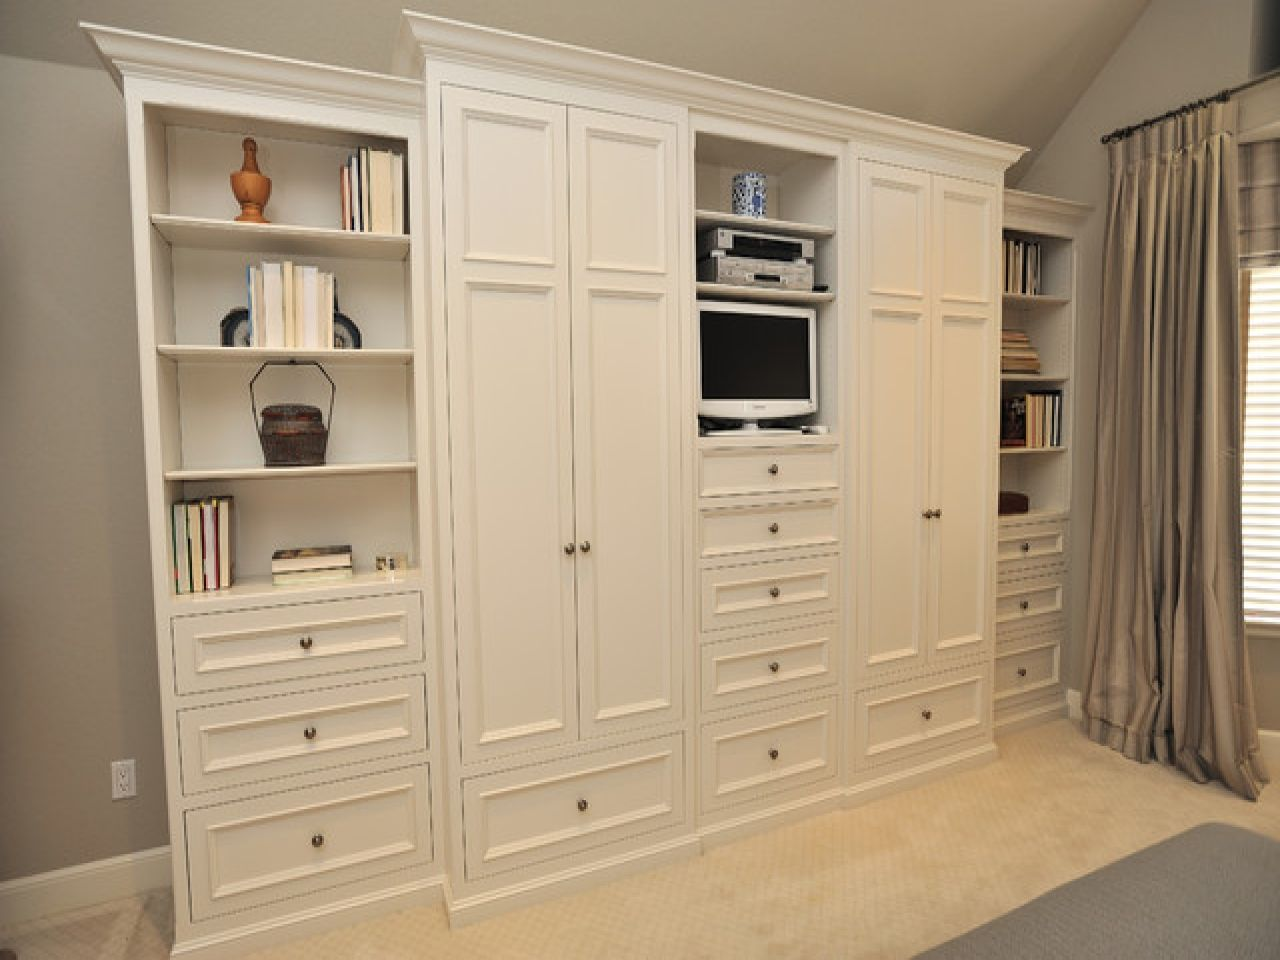 Bedroom Furniture Storage Solutions   Interior Design Ideas For Bedroom